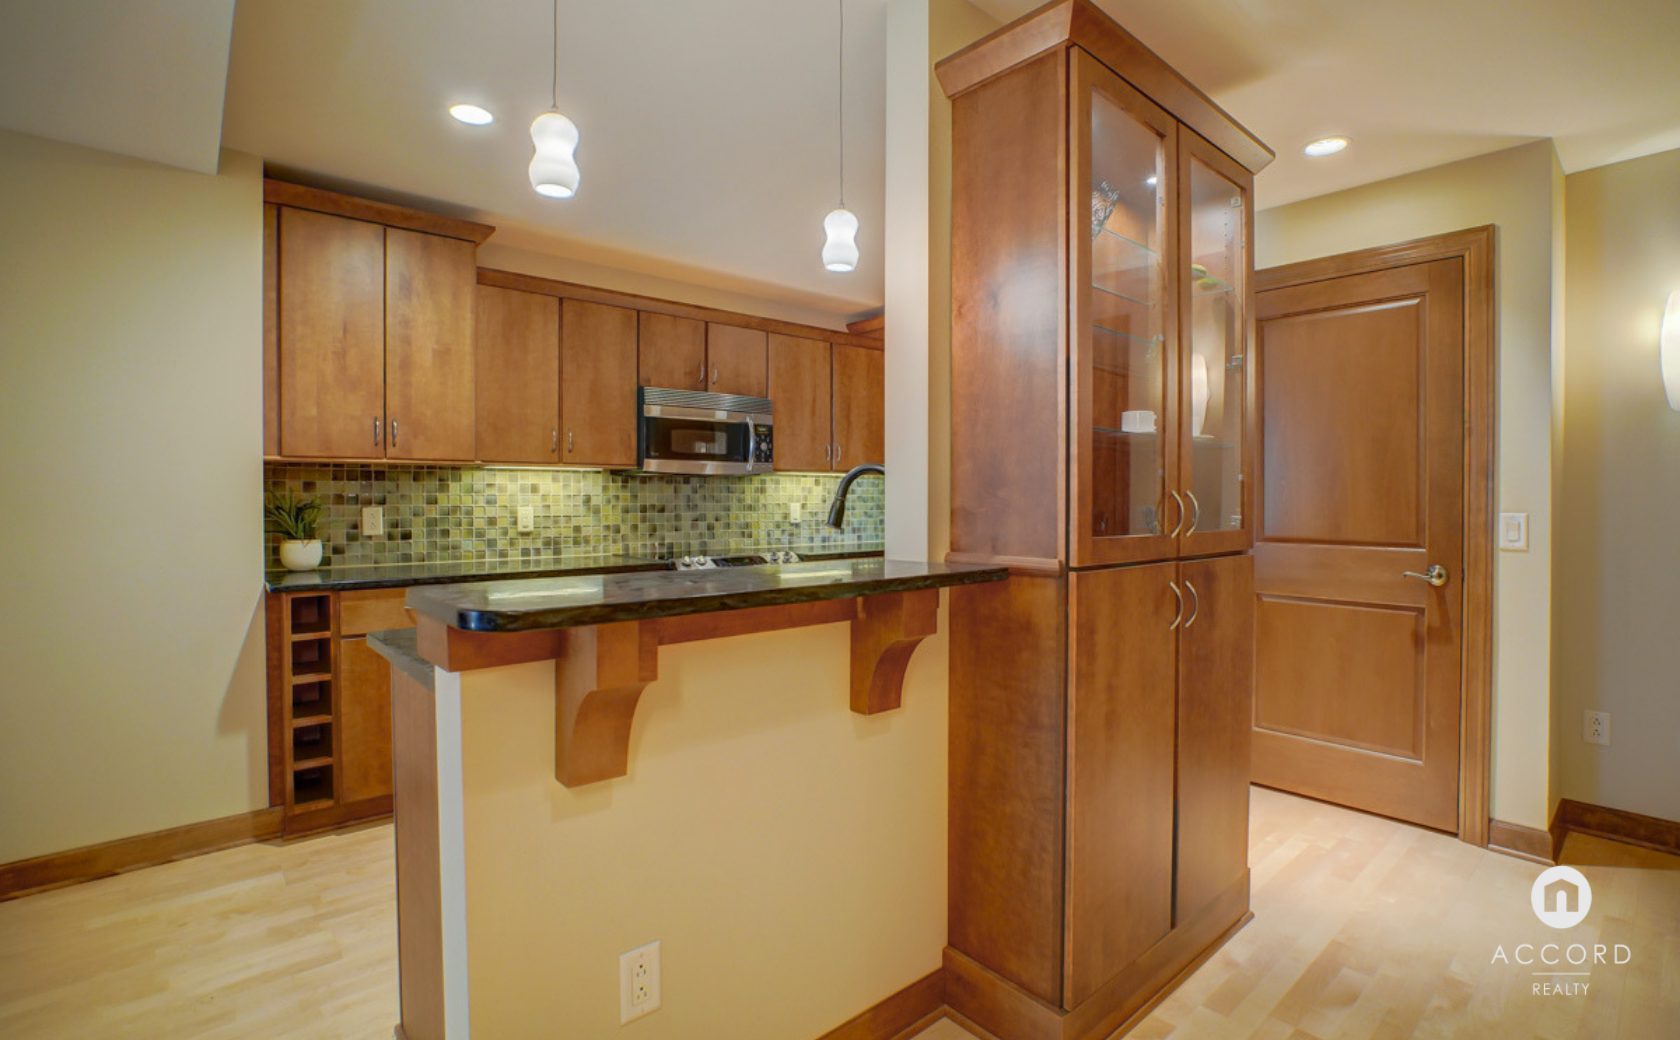 123 W Washington Ave #303 Madison, WI 53703 - Kitchen7.png